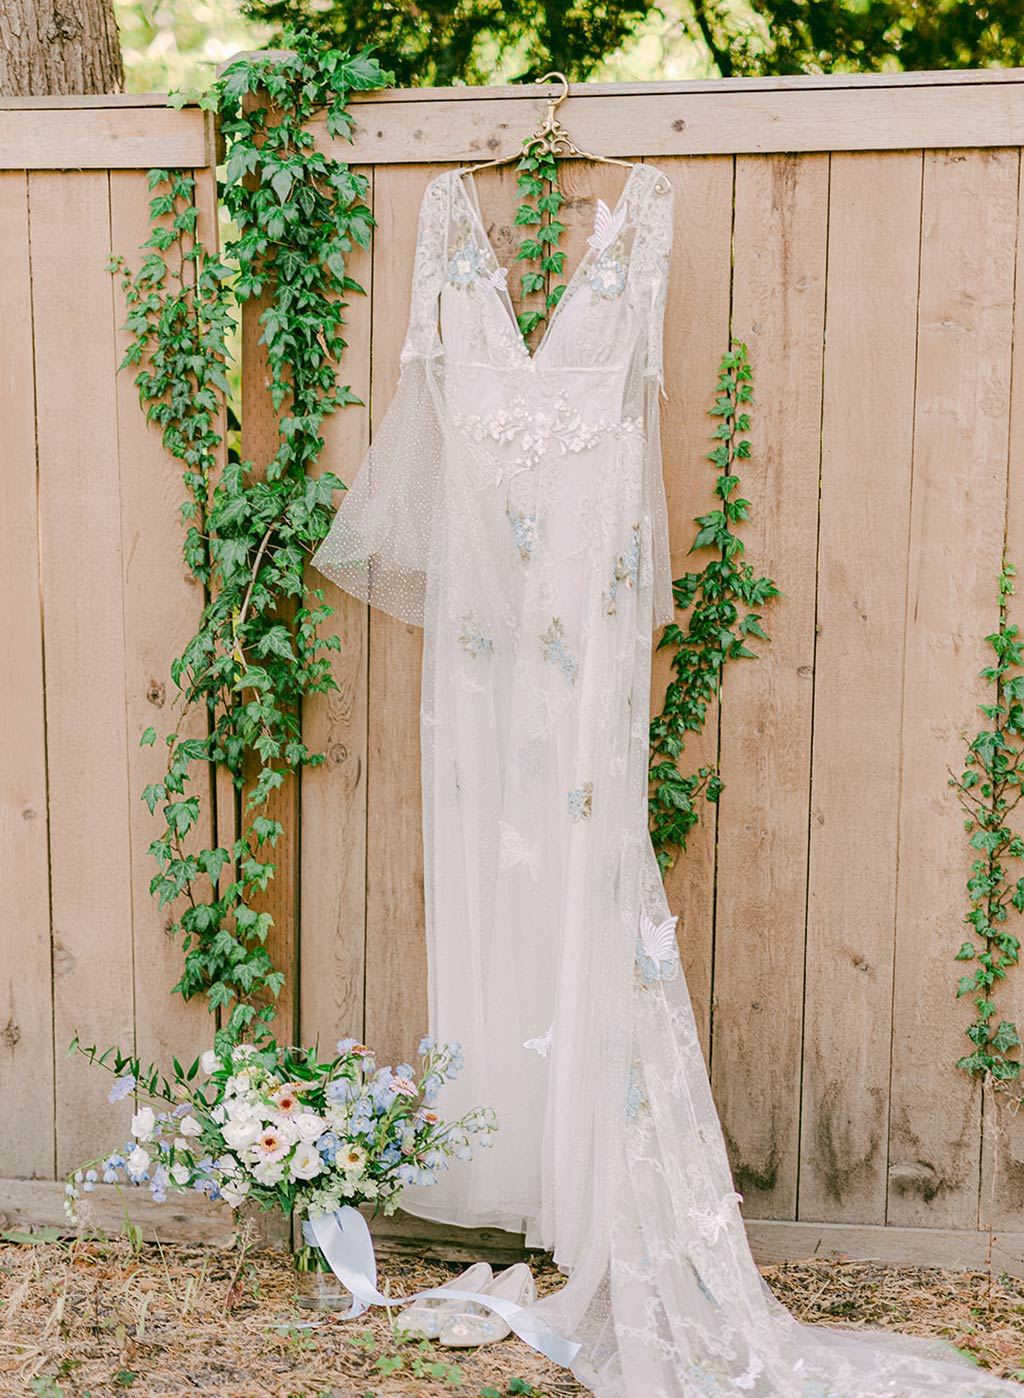 Chrysalis Wedding Dress on Hanger in Garden Setting